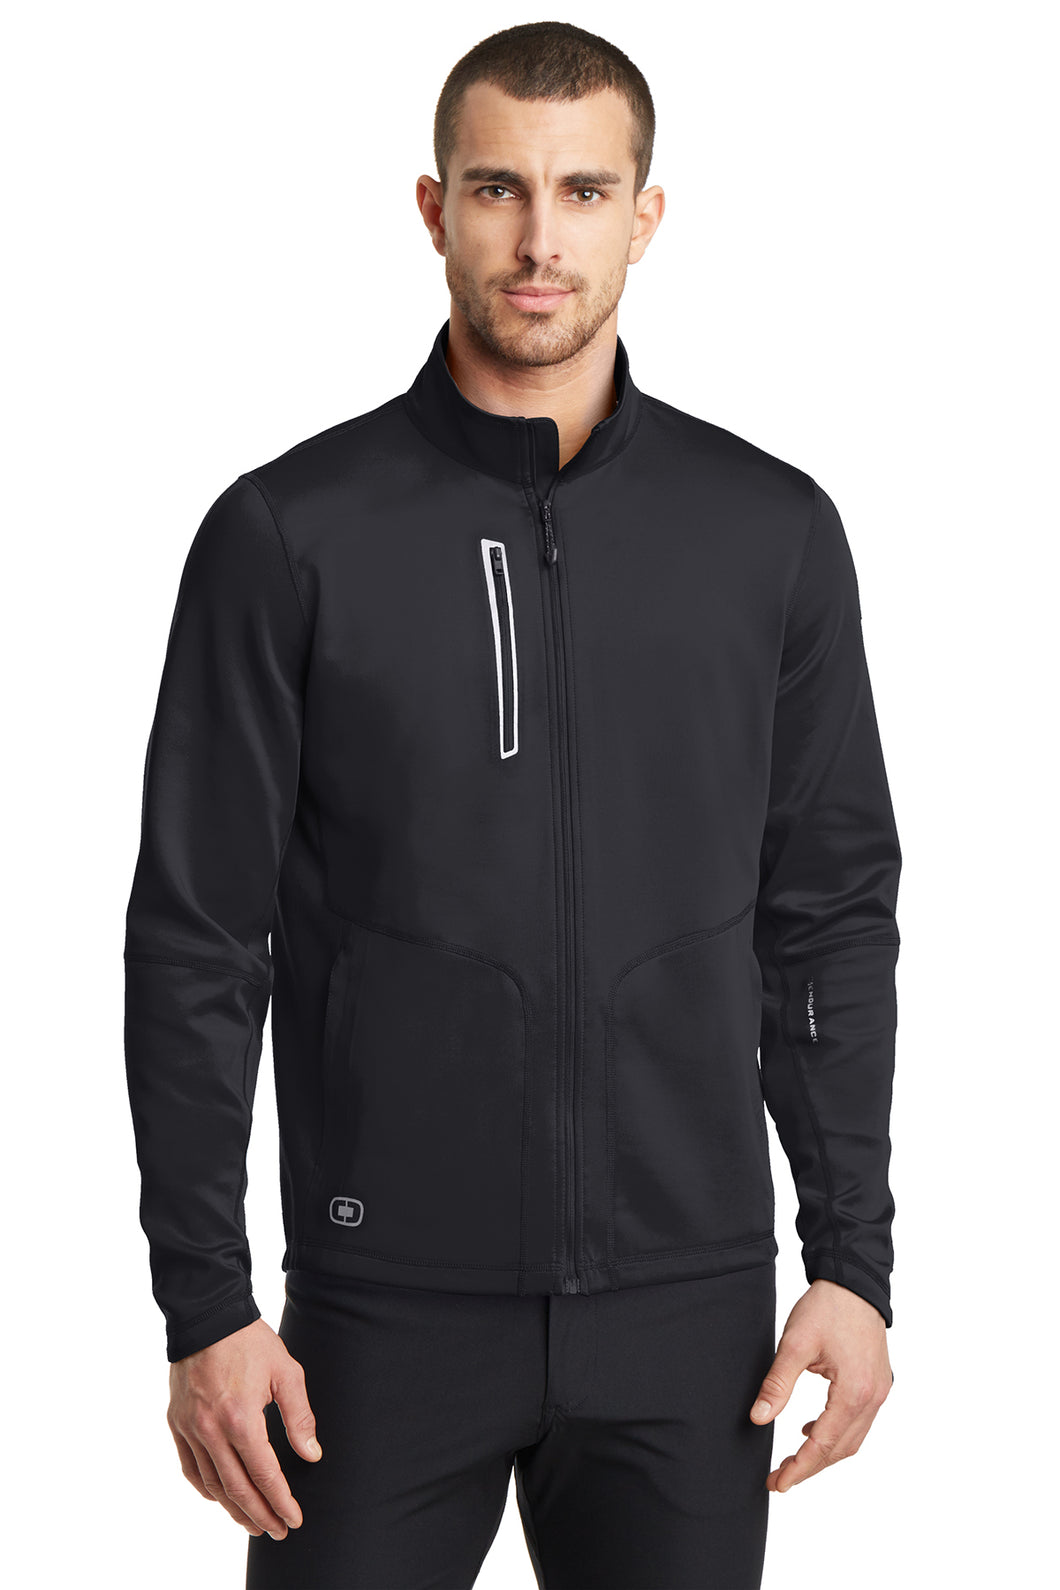 HBPC OGIO® ENDURANCE Men's Fulcrum Full-Zip OE700